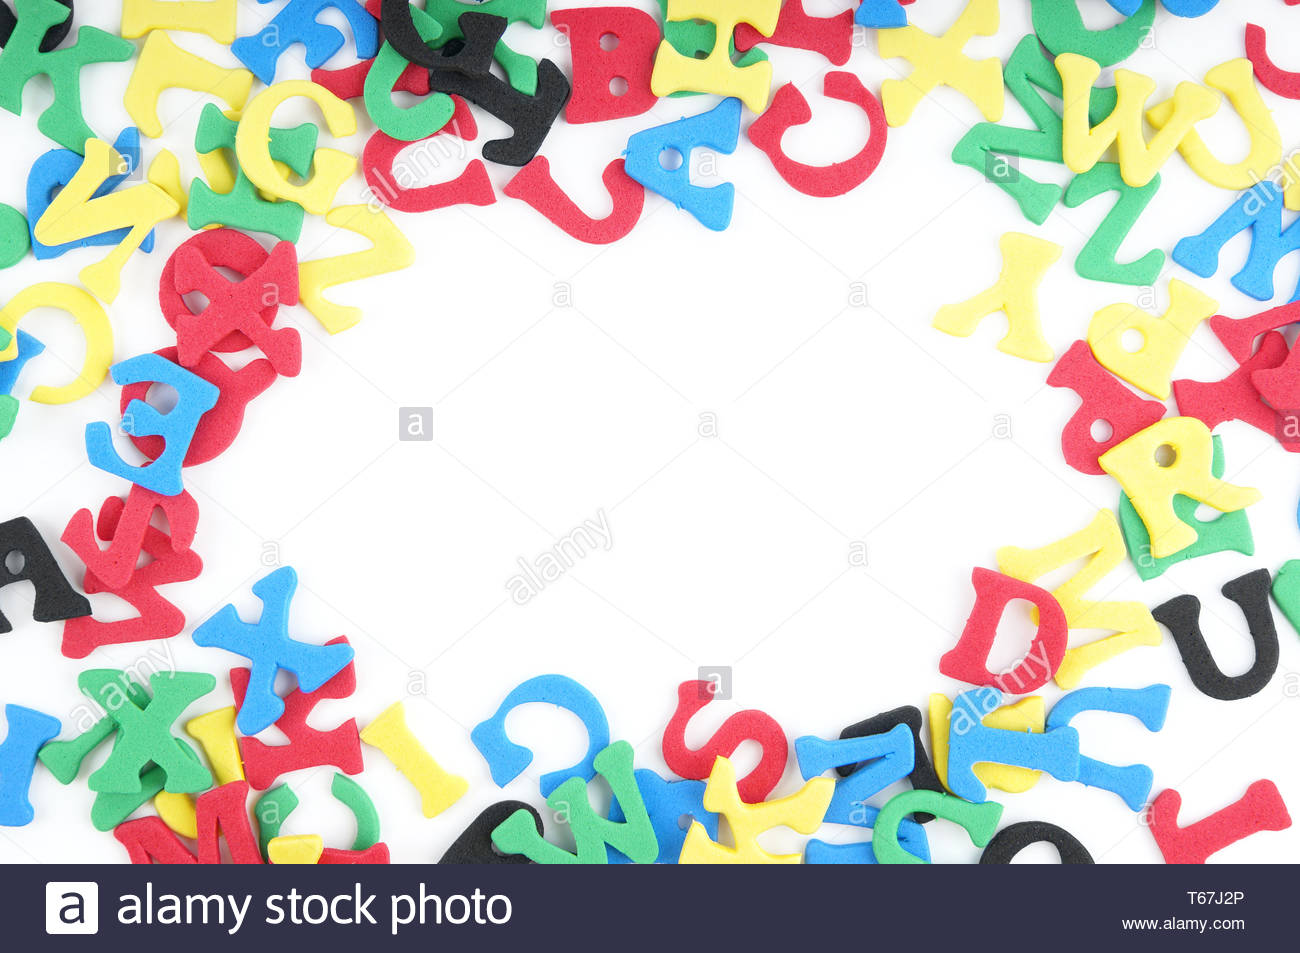 jumble of colorful foam rubber letters - Stock Image